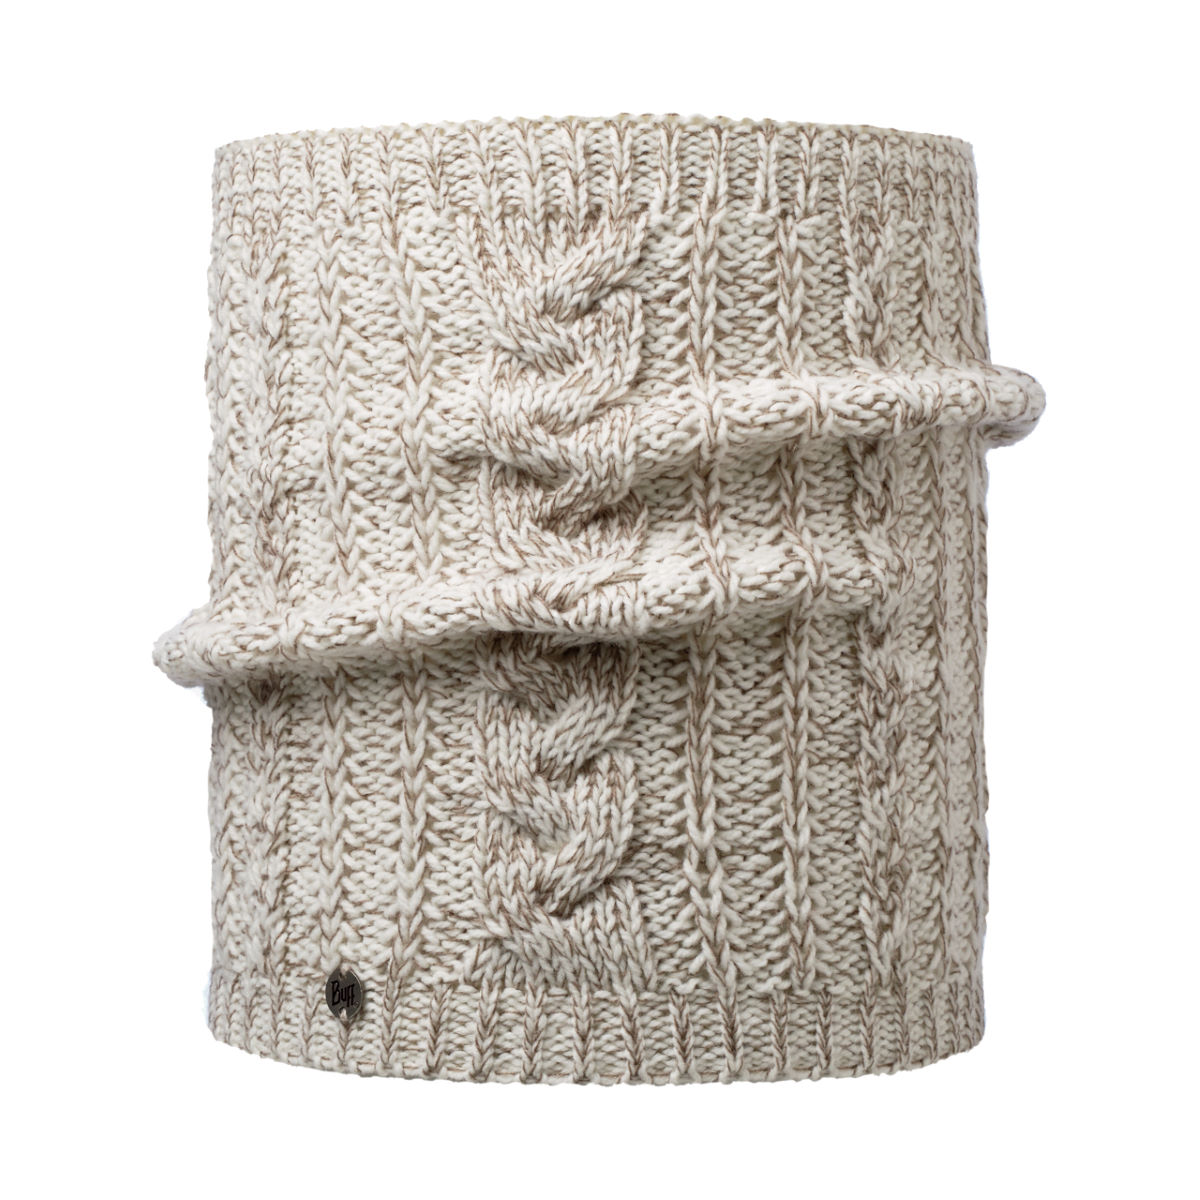 Couvre-cou Buff Darla Cru - One Size Neutral Couvre-cous